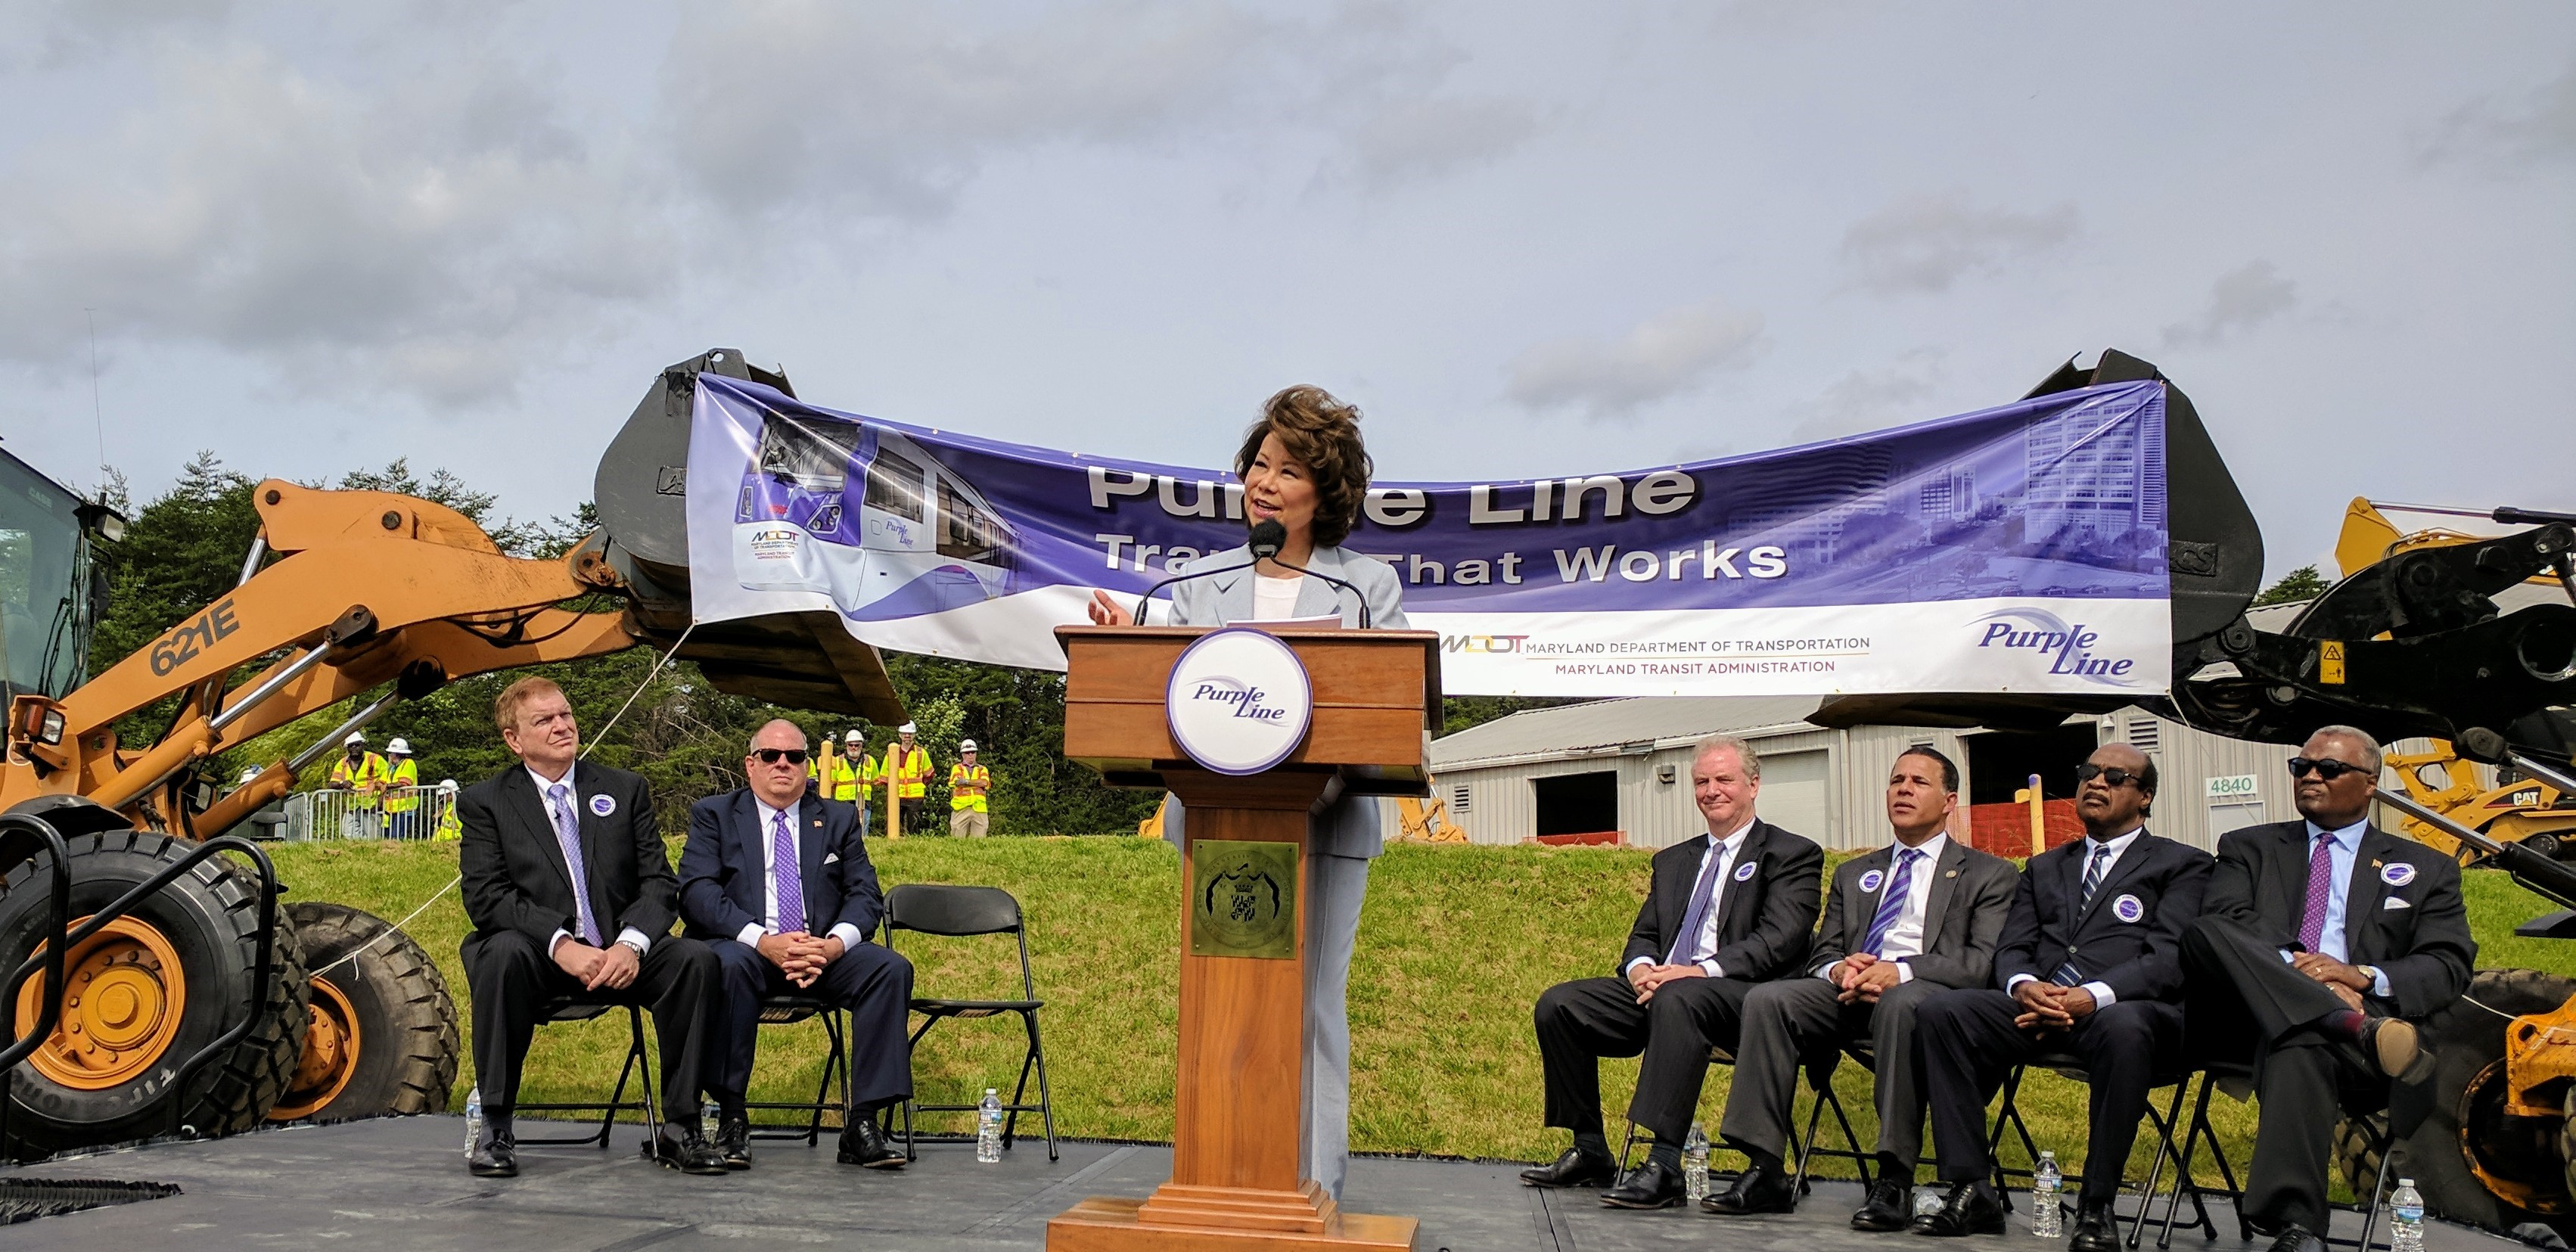 Secretary Chao signs the Purple Line Federal Funding Grant Agreement